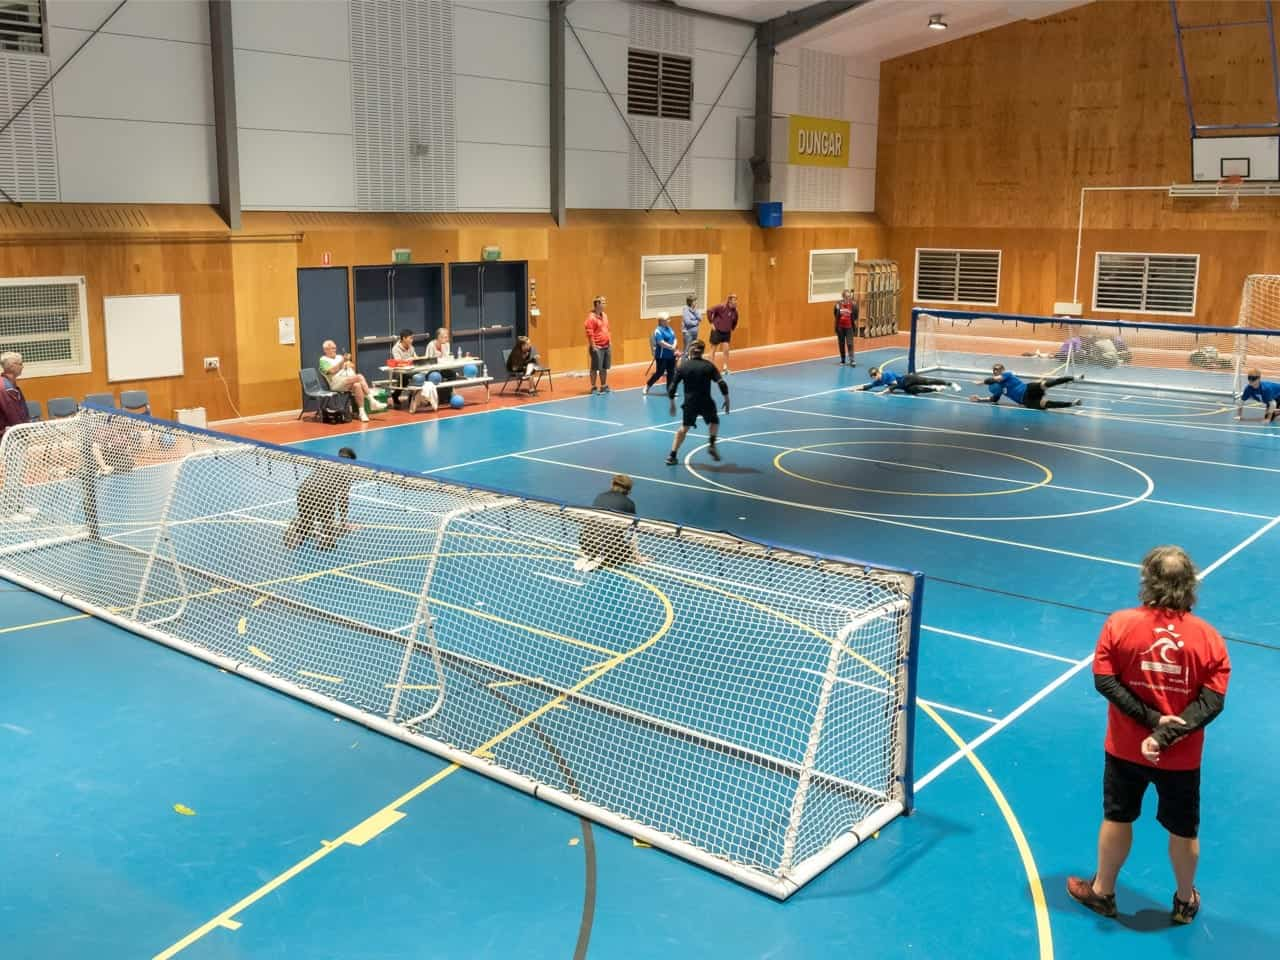 A game of the Paralympic sport of Goalball